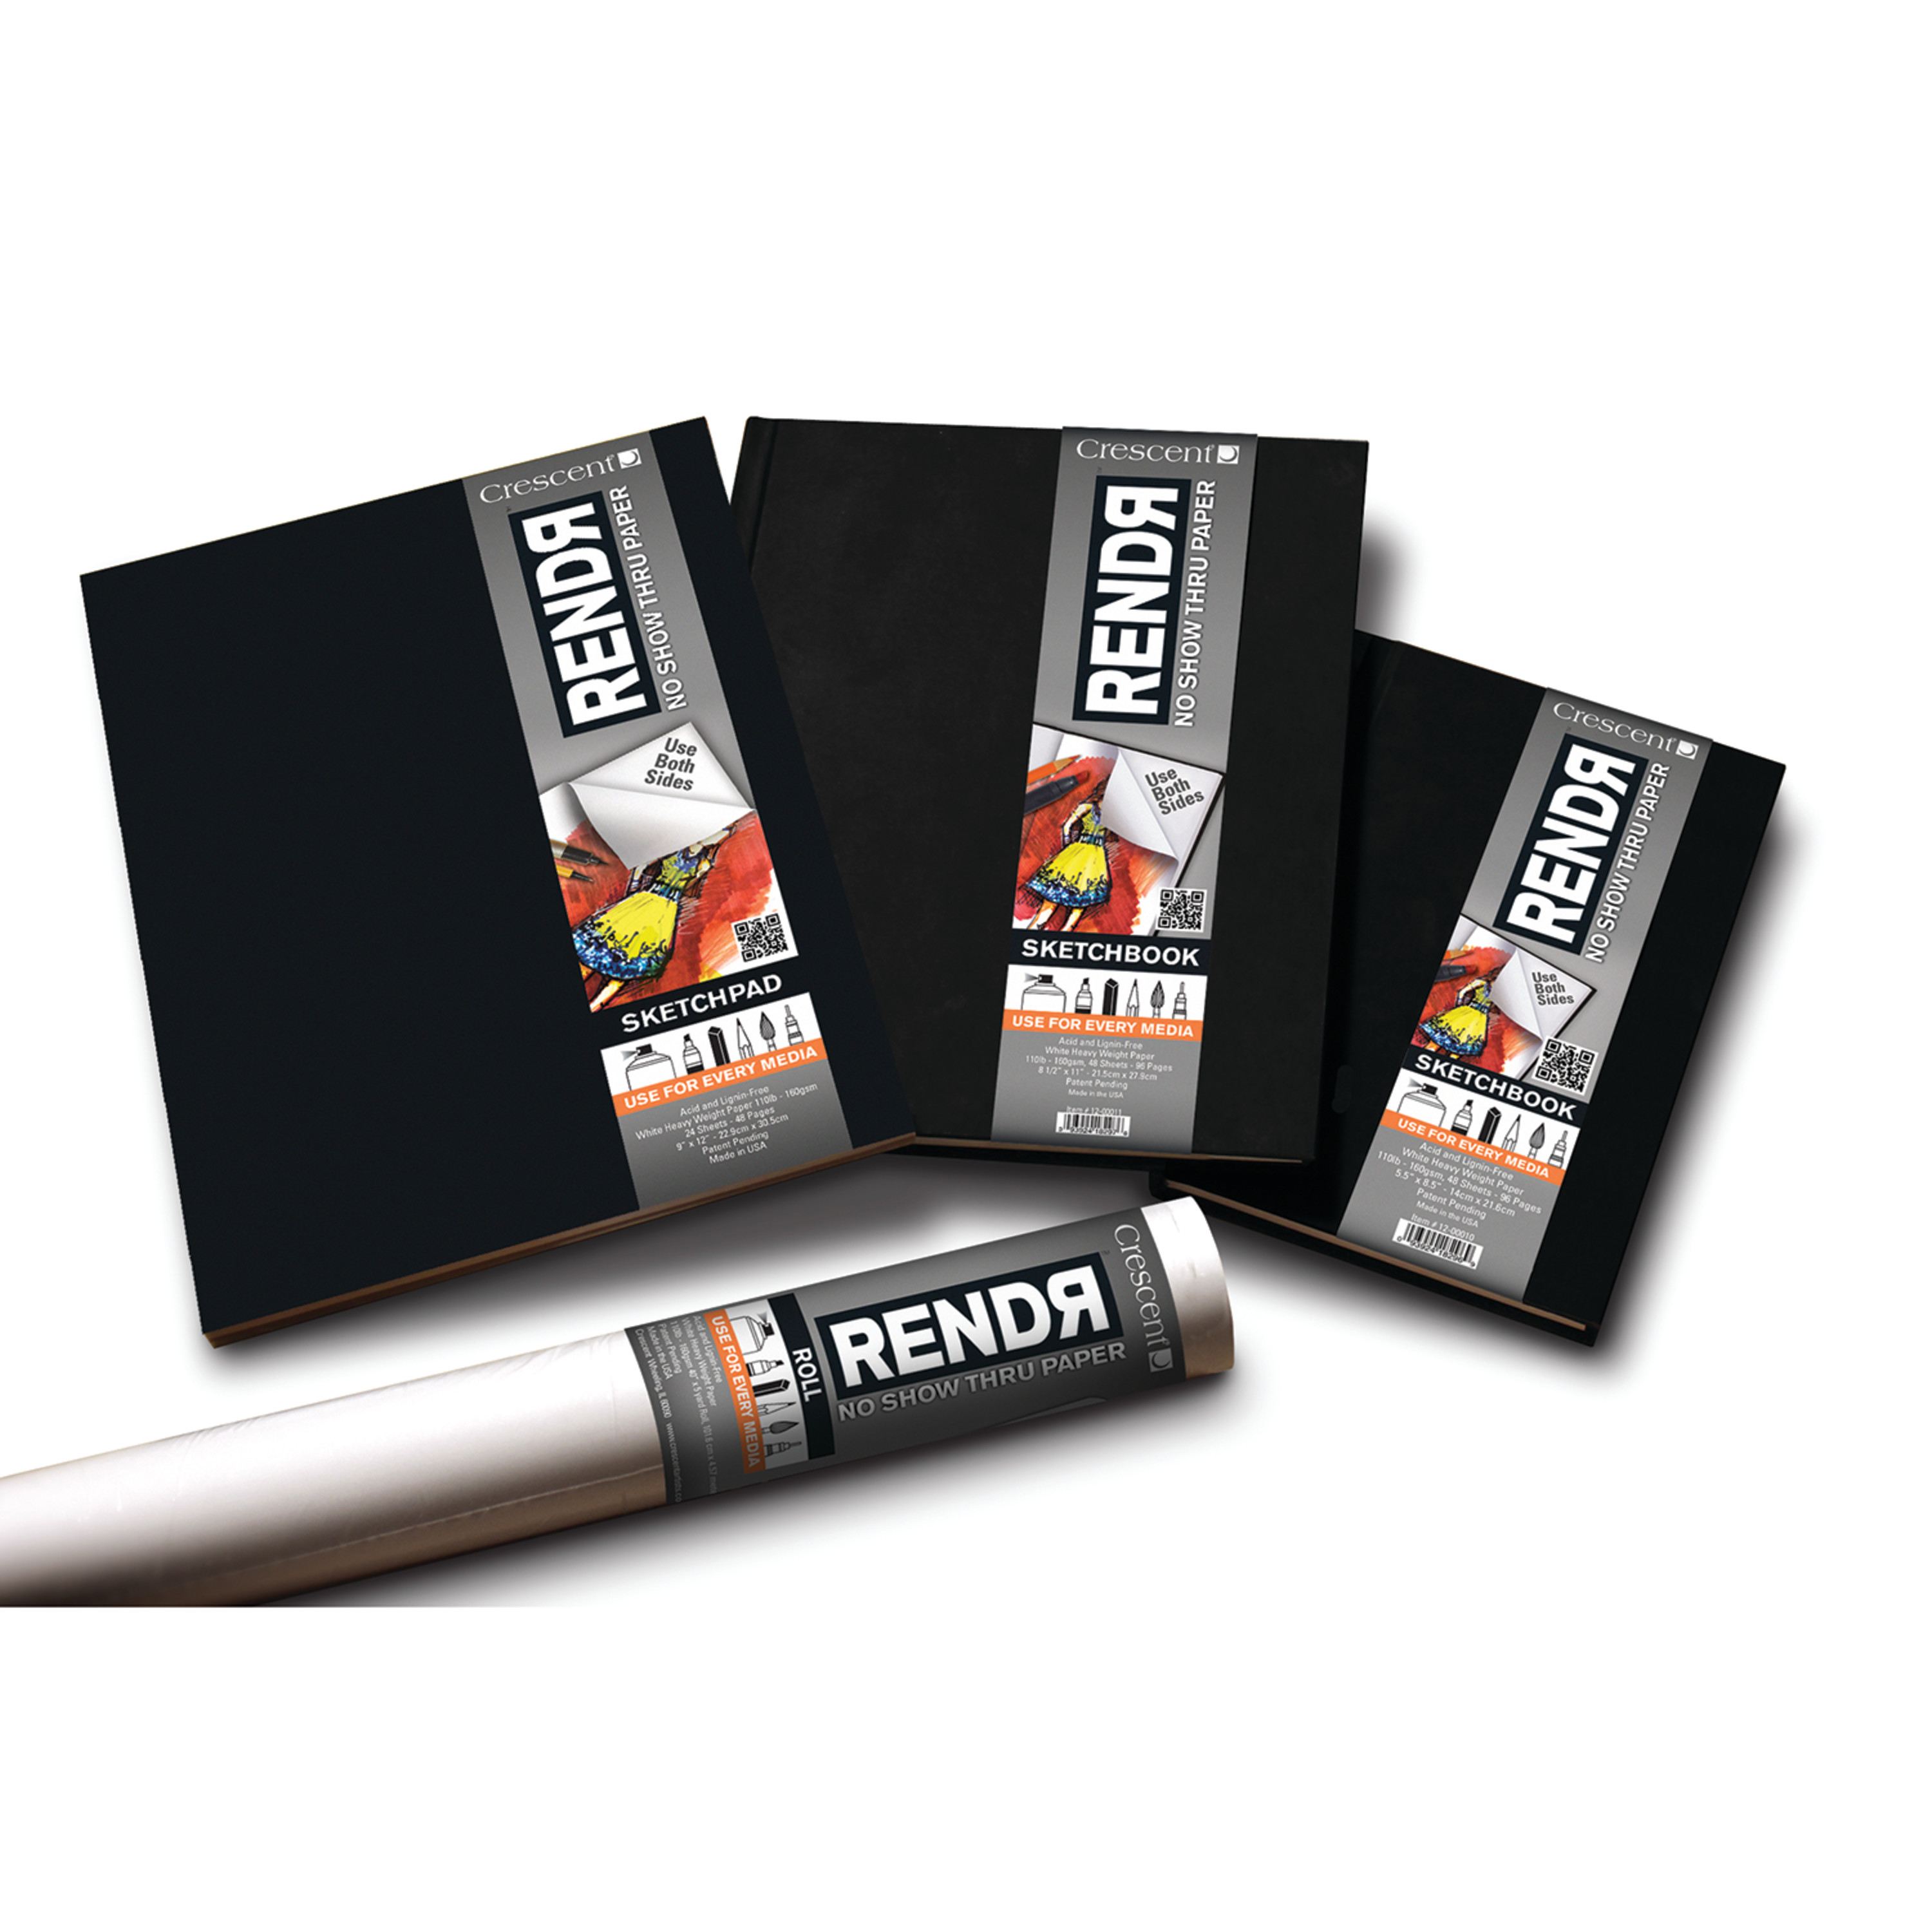 Crescent RENDR Hard-Cover Sketch Book, 5.5in x 8.5in 48/Sheets